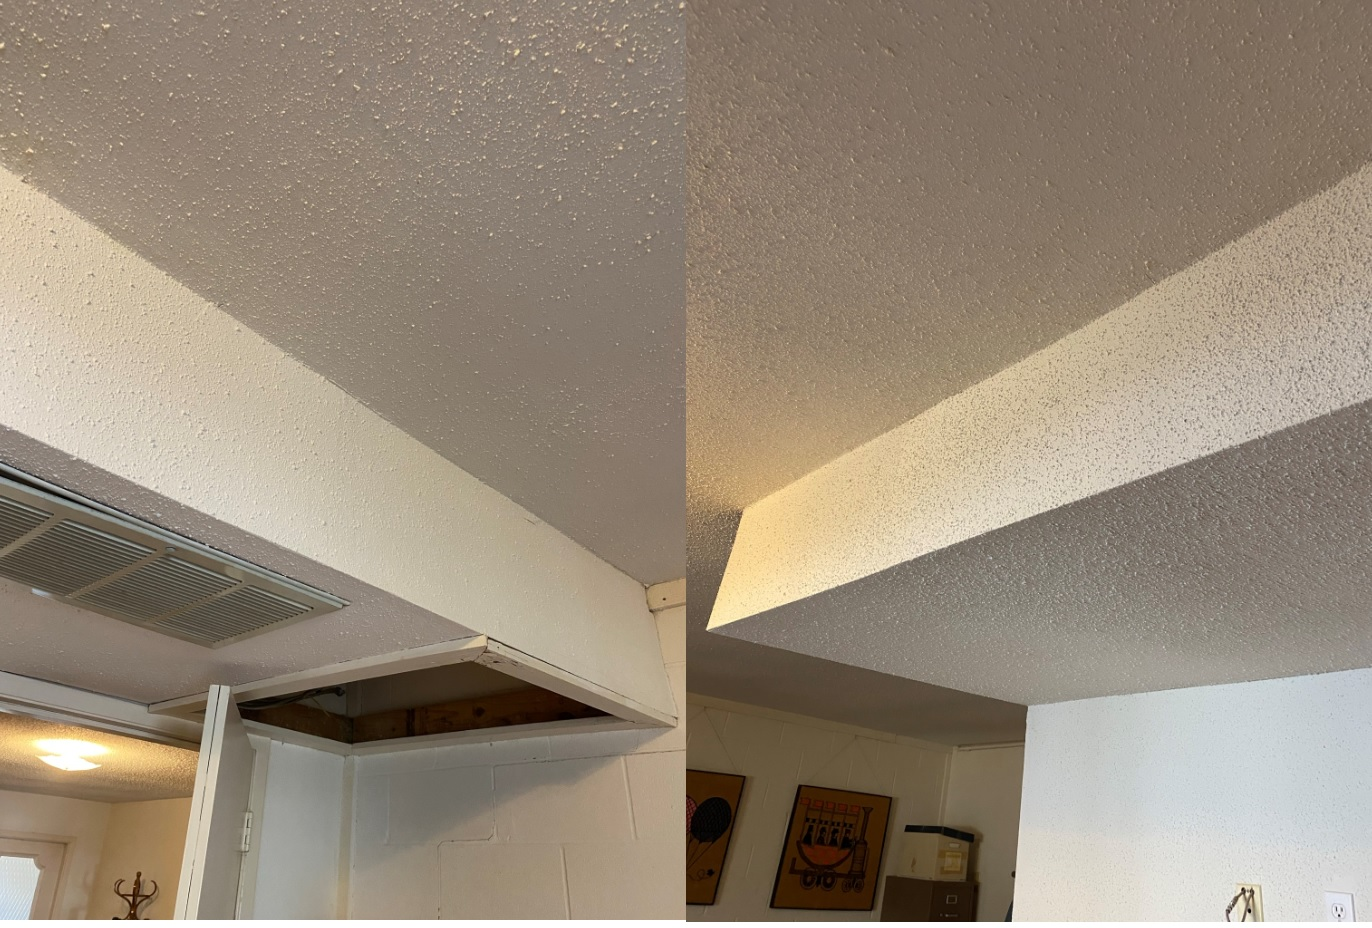 A remodeled ceiling